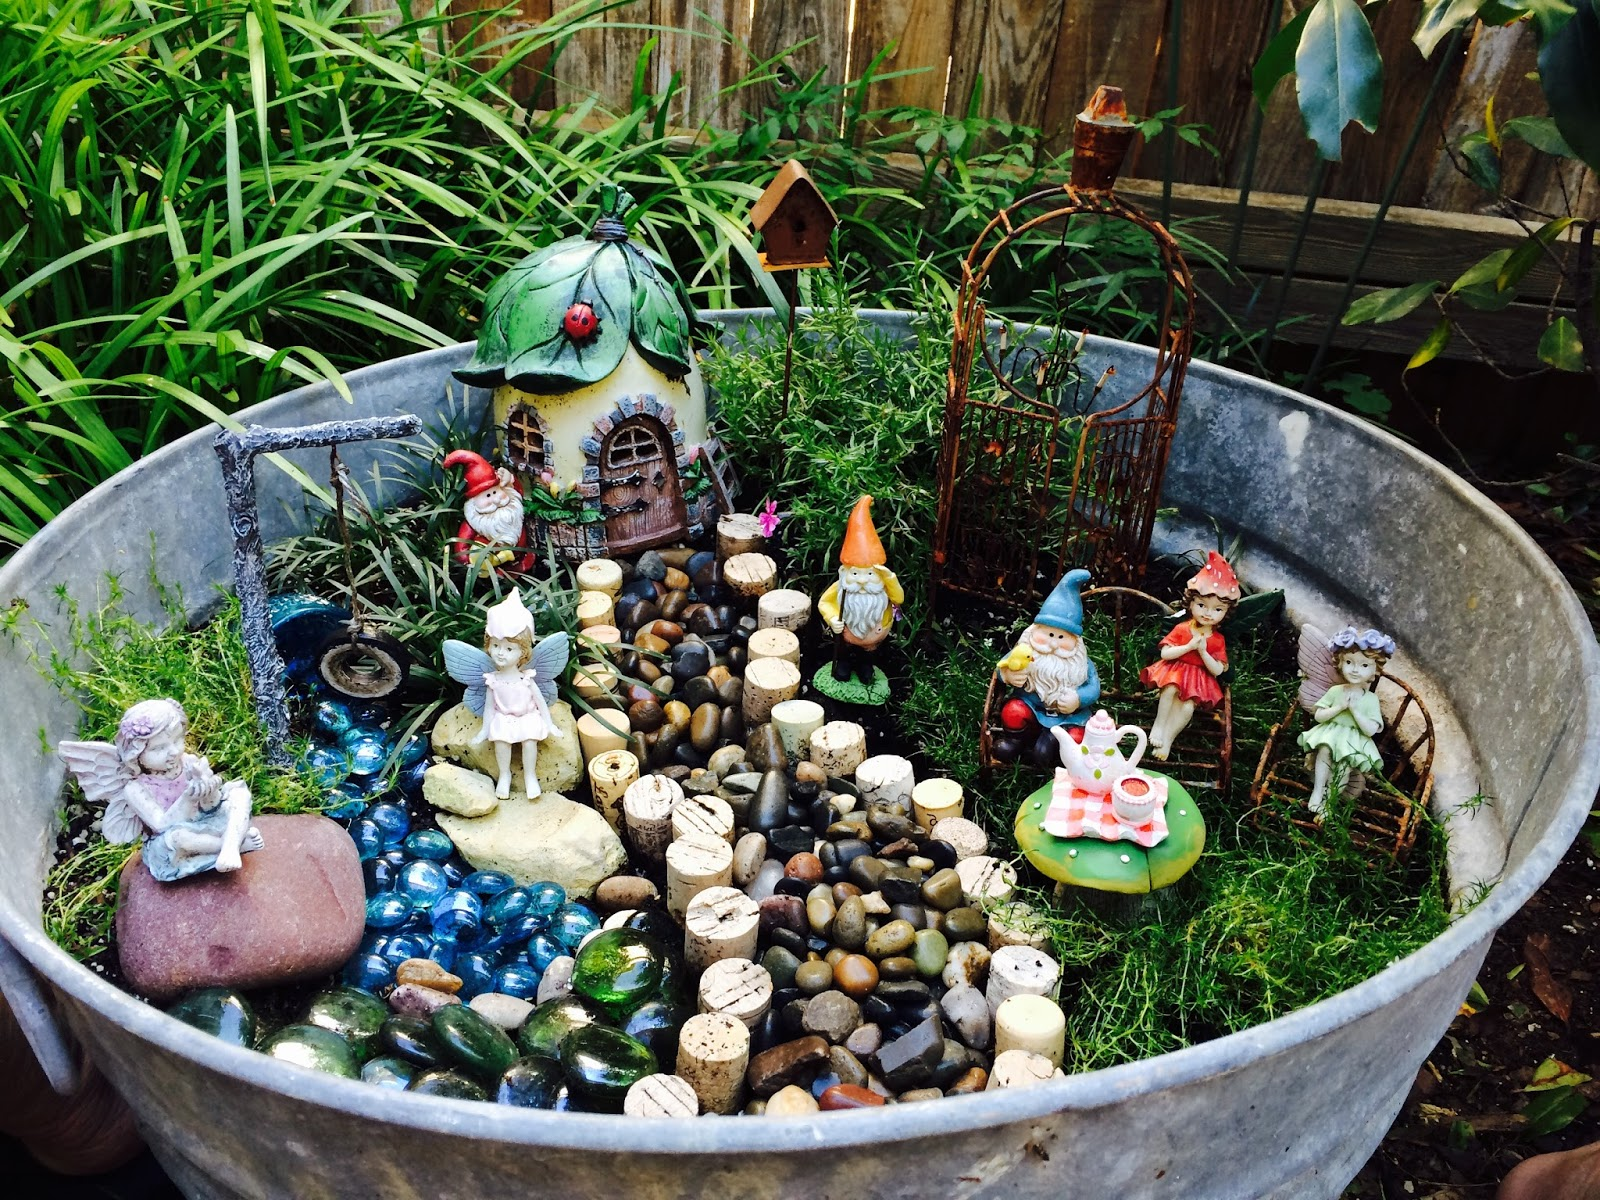 Come Along To See My Fairy Garden That I Made Several Years Ago, Thatu0027s In  My Galvanized Tub. I Have Four Fairies For My Four Granddaughters And Three  ...